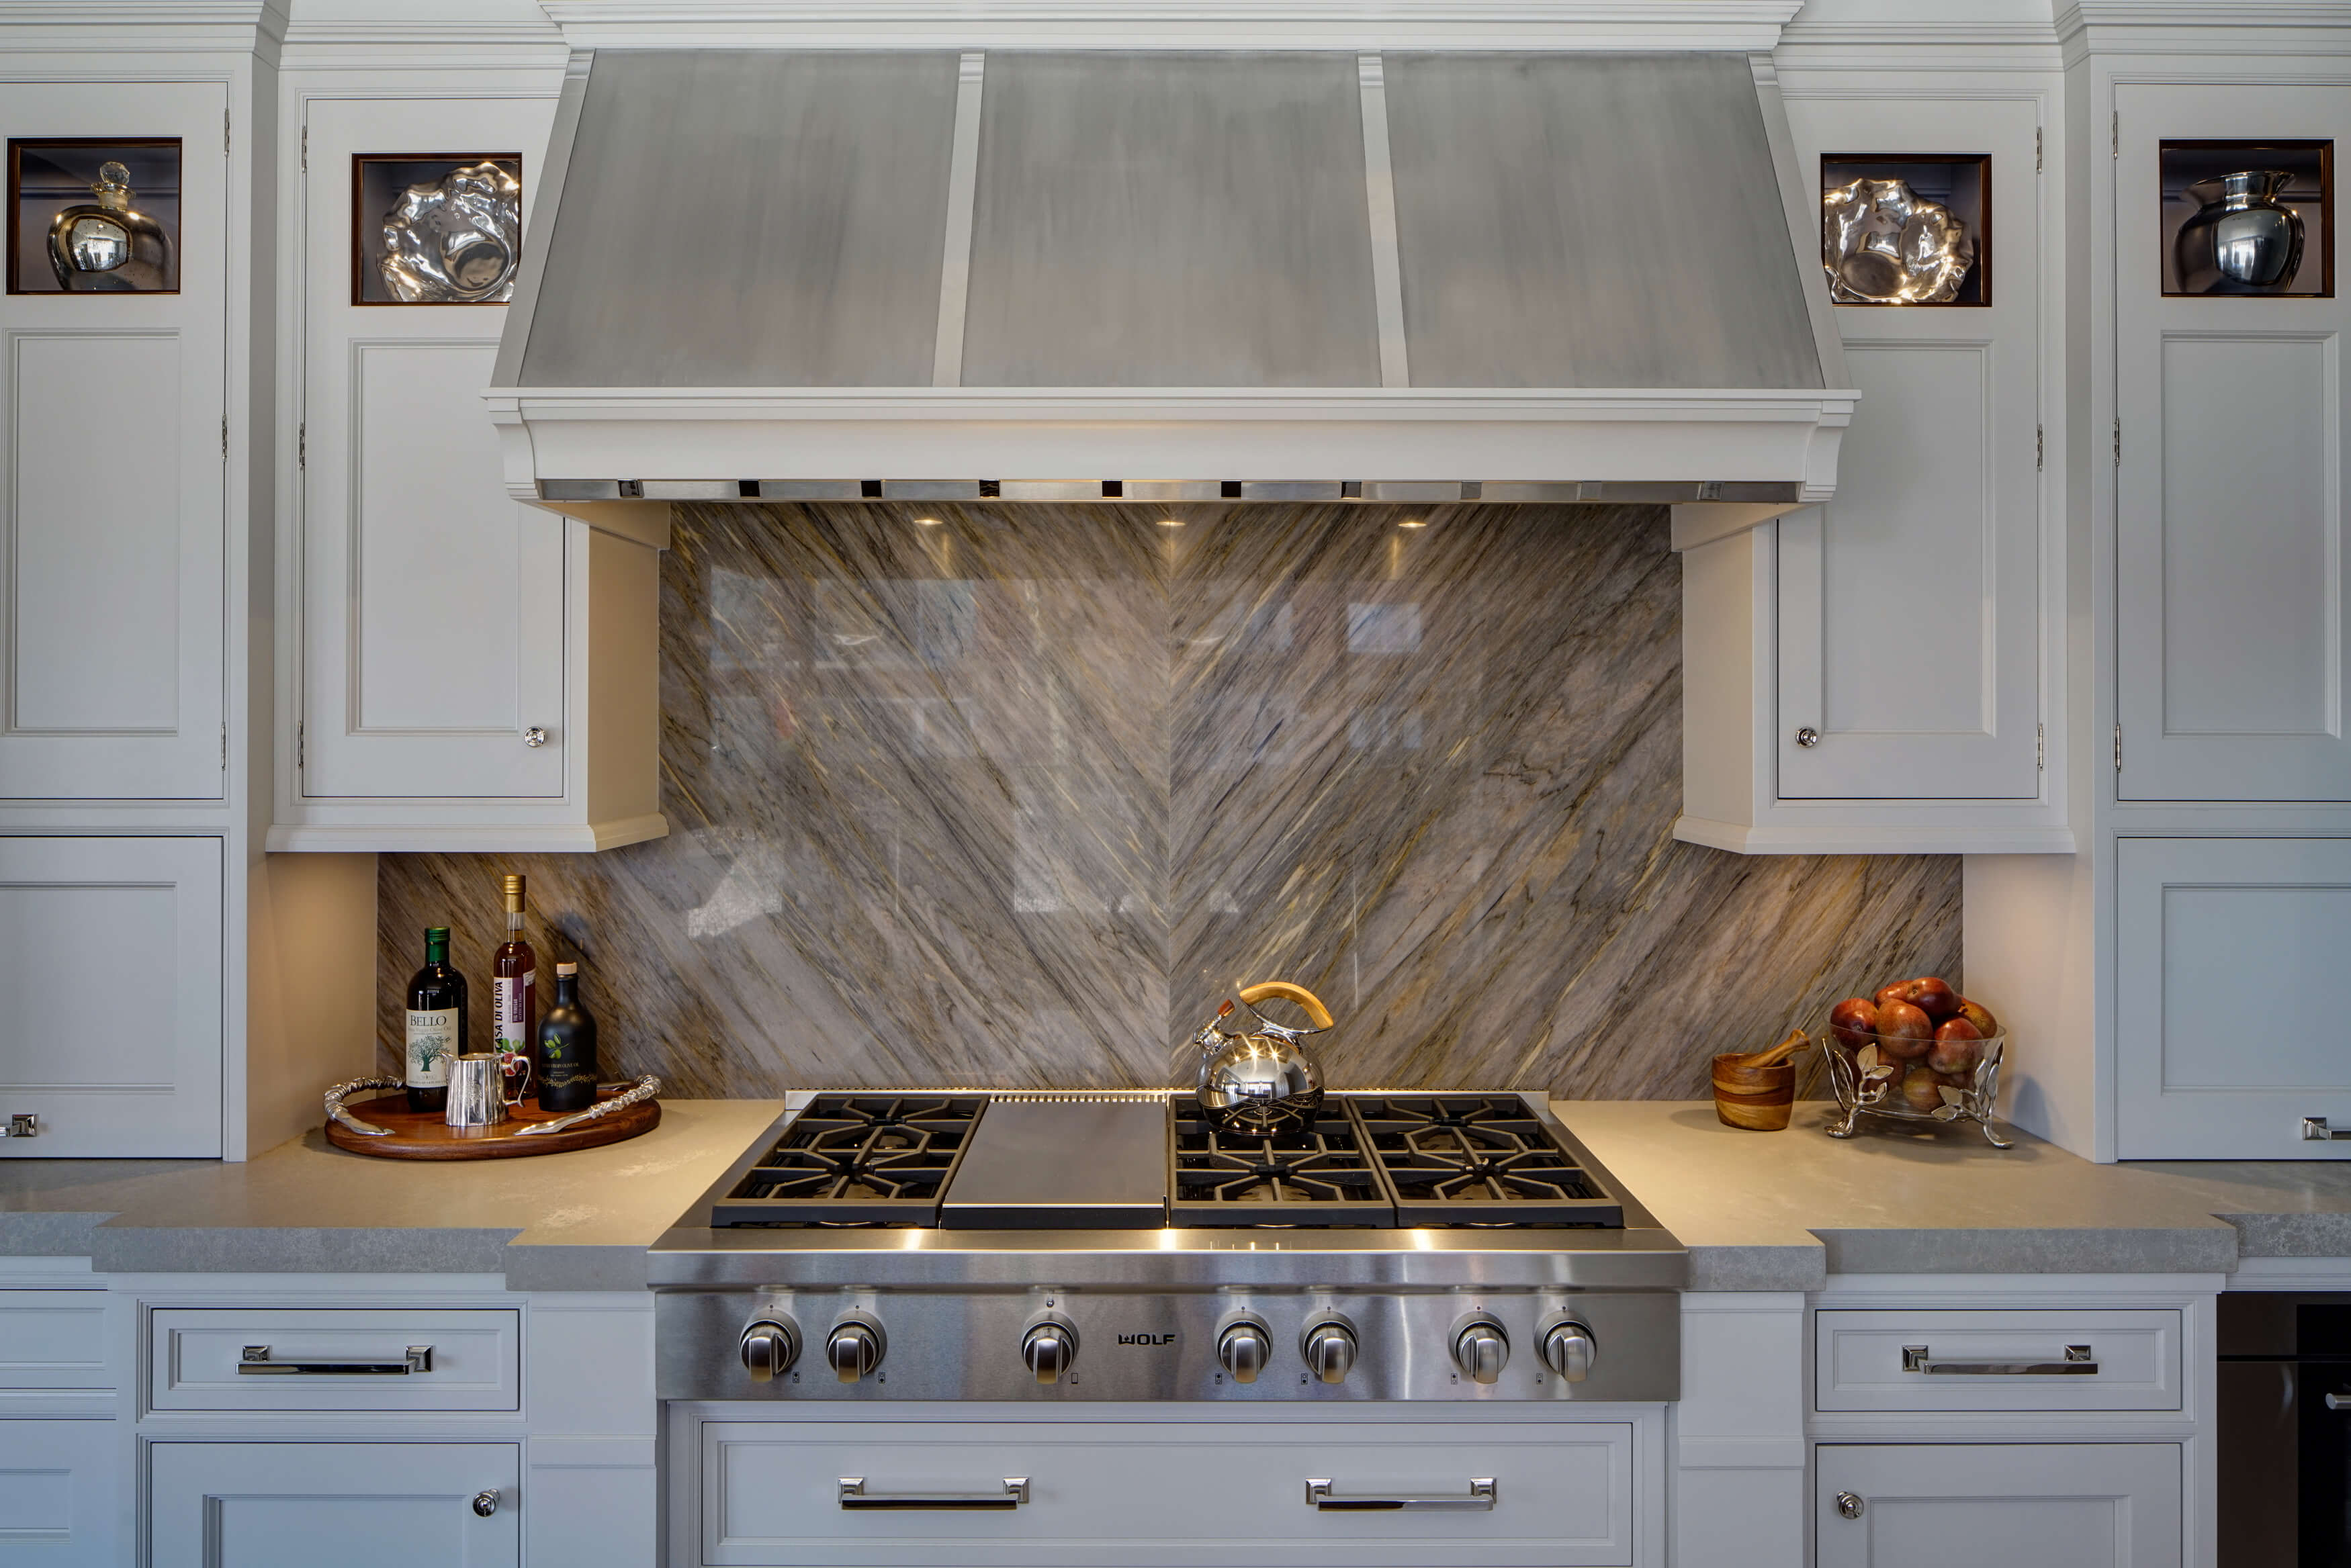 Interior Rutt Kitchen Cabinets drury design unveils rutt handcrafted cabinetry kitchen new ruskin series display at and bath showroomrutt cabinetrys is designed by scott stultz